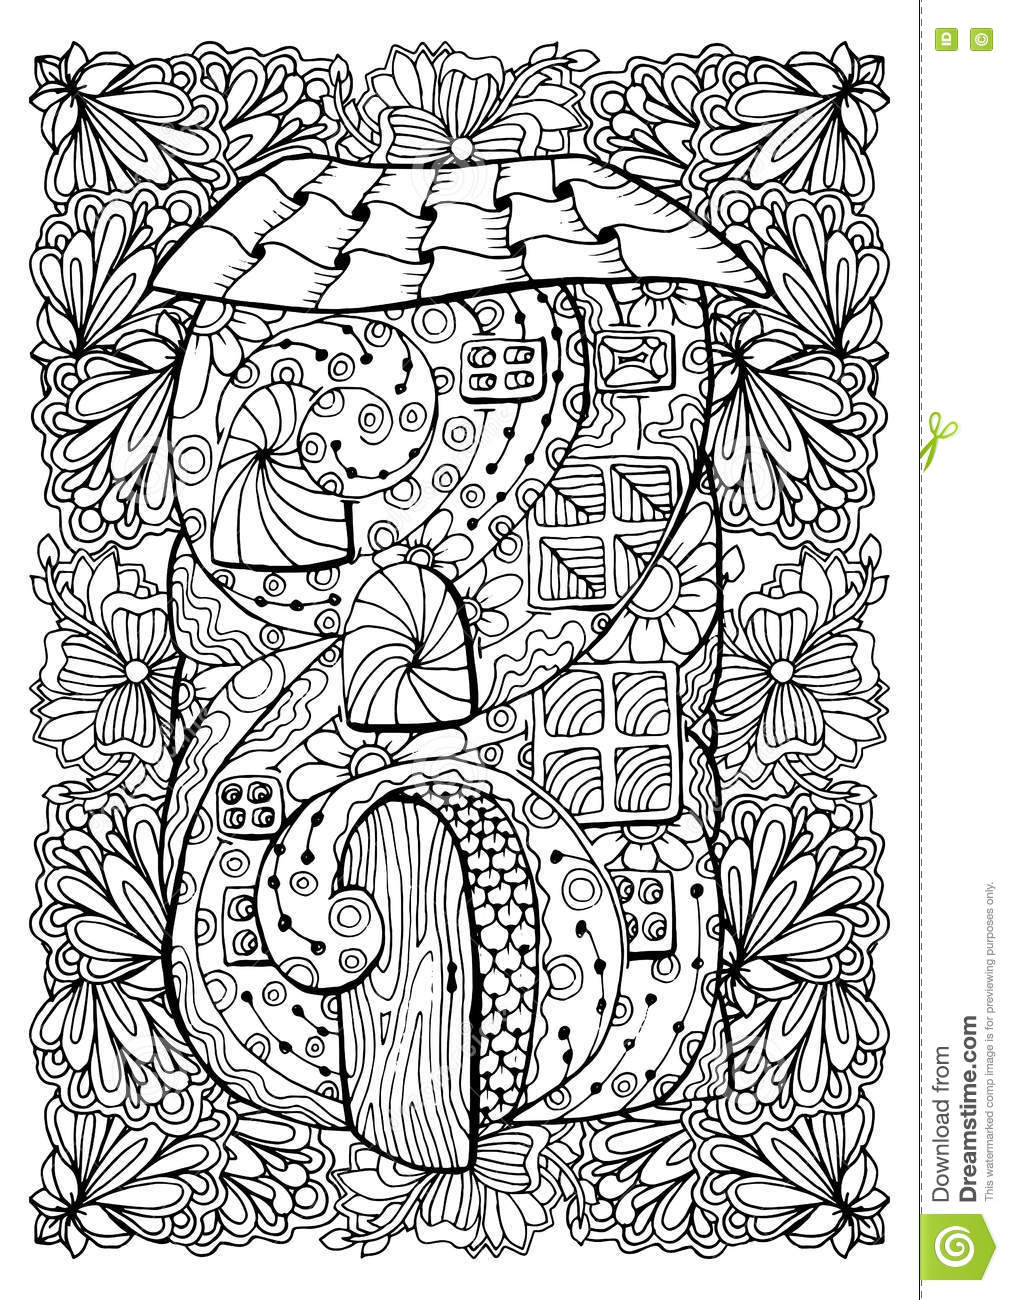 Adult Coloring Book Cover Design Mono Color Black Ink Illustration Vector Art Fairy House With Open Door